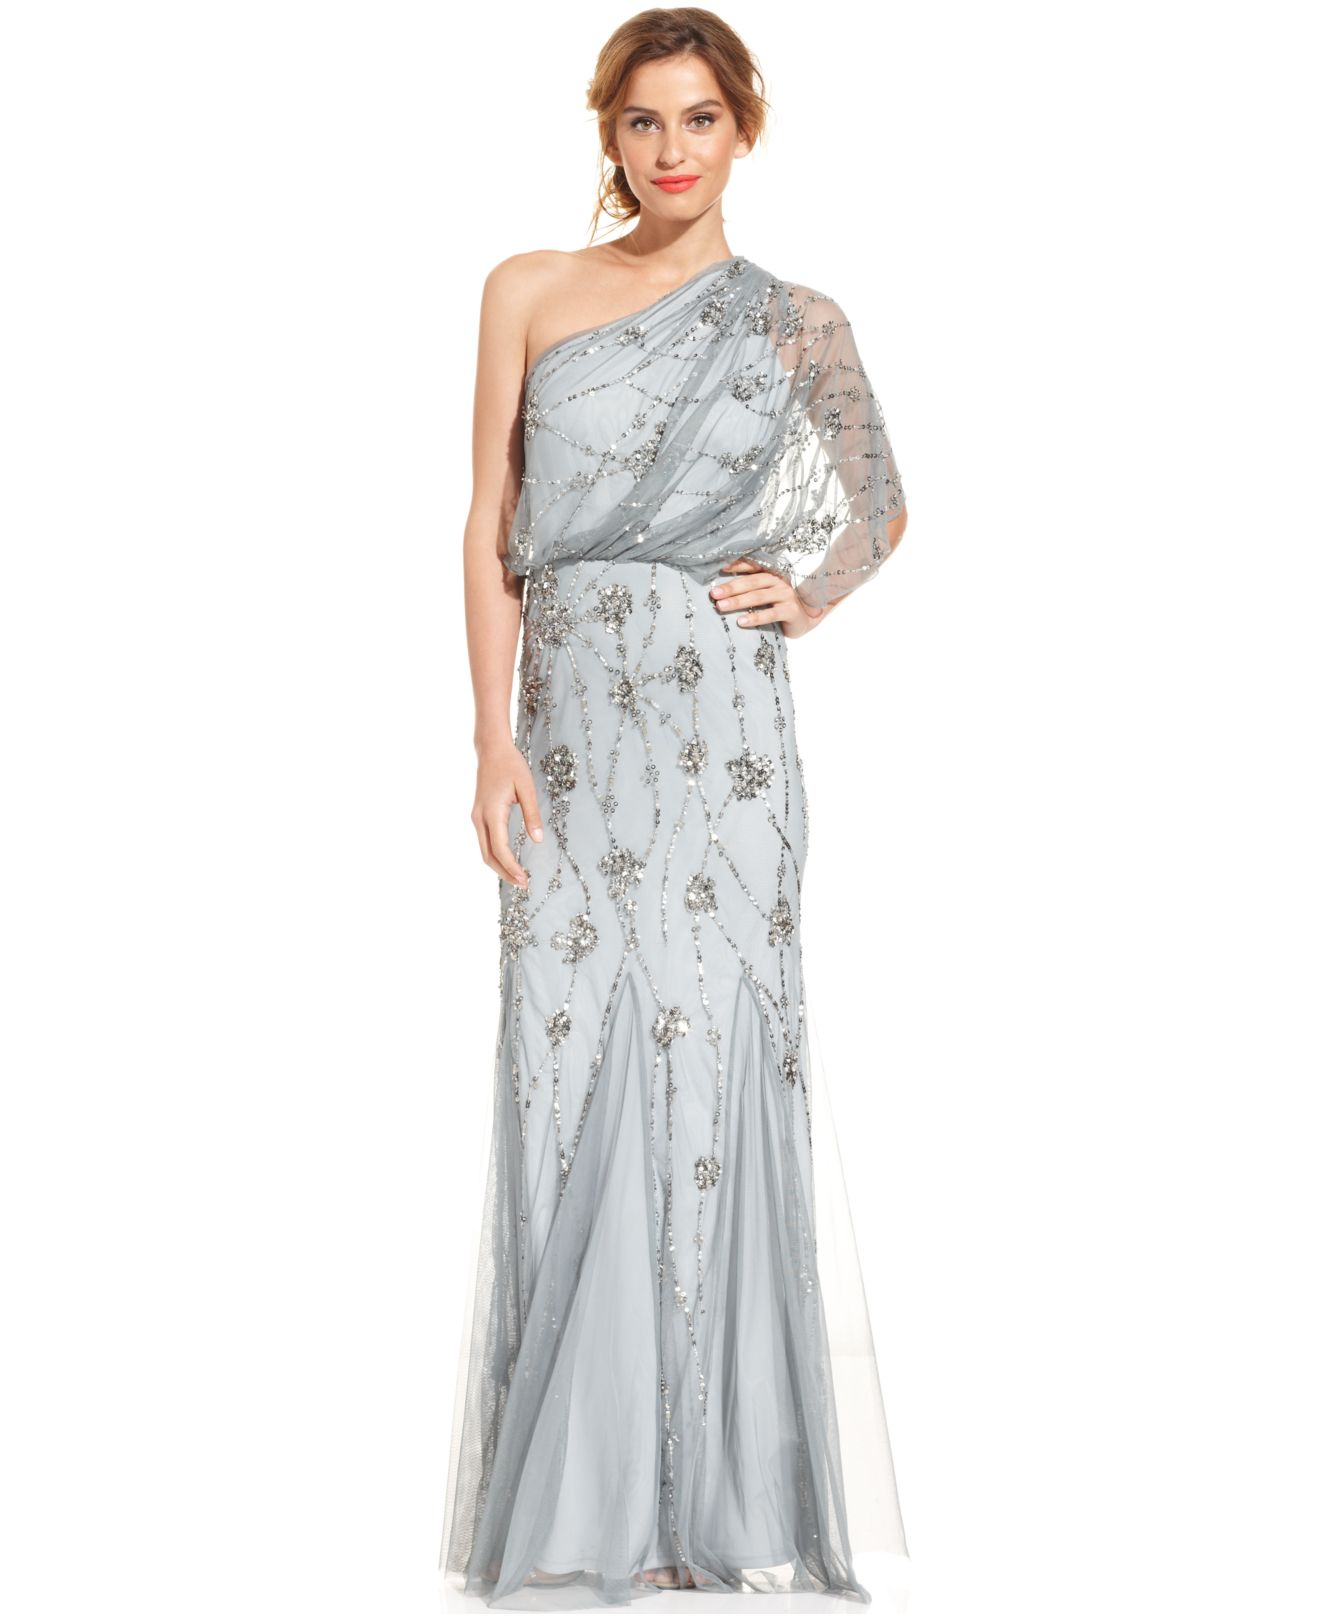 Papell cap sleeve beaded sequined gown dresses women macy s - Gallery Previously Sold At Macy S Women S Adrianna Papell